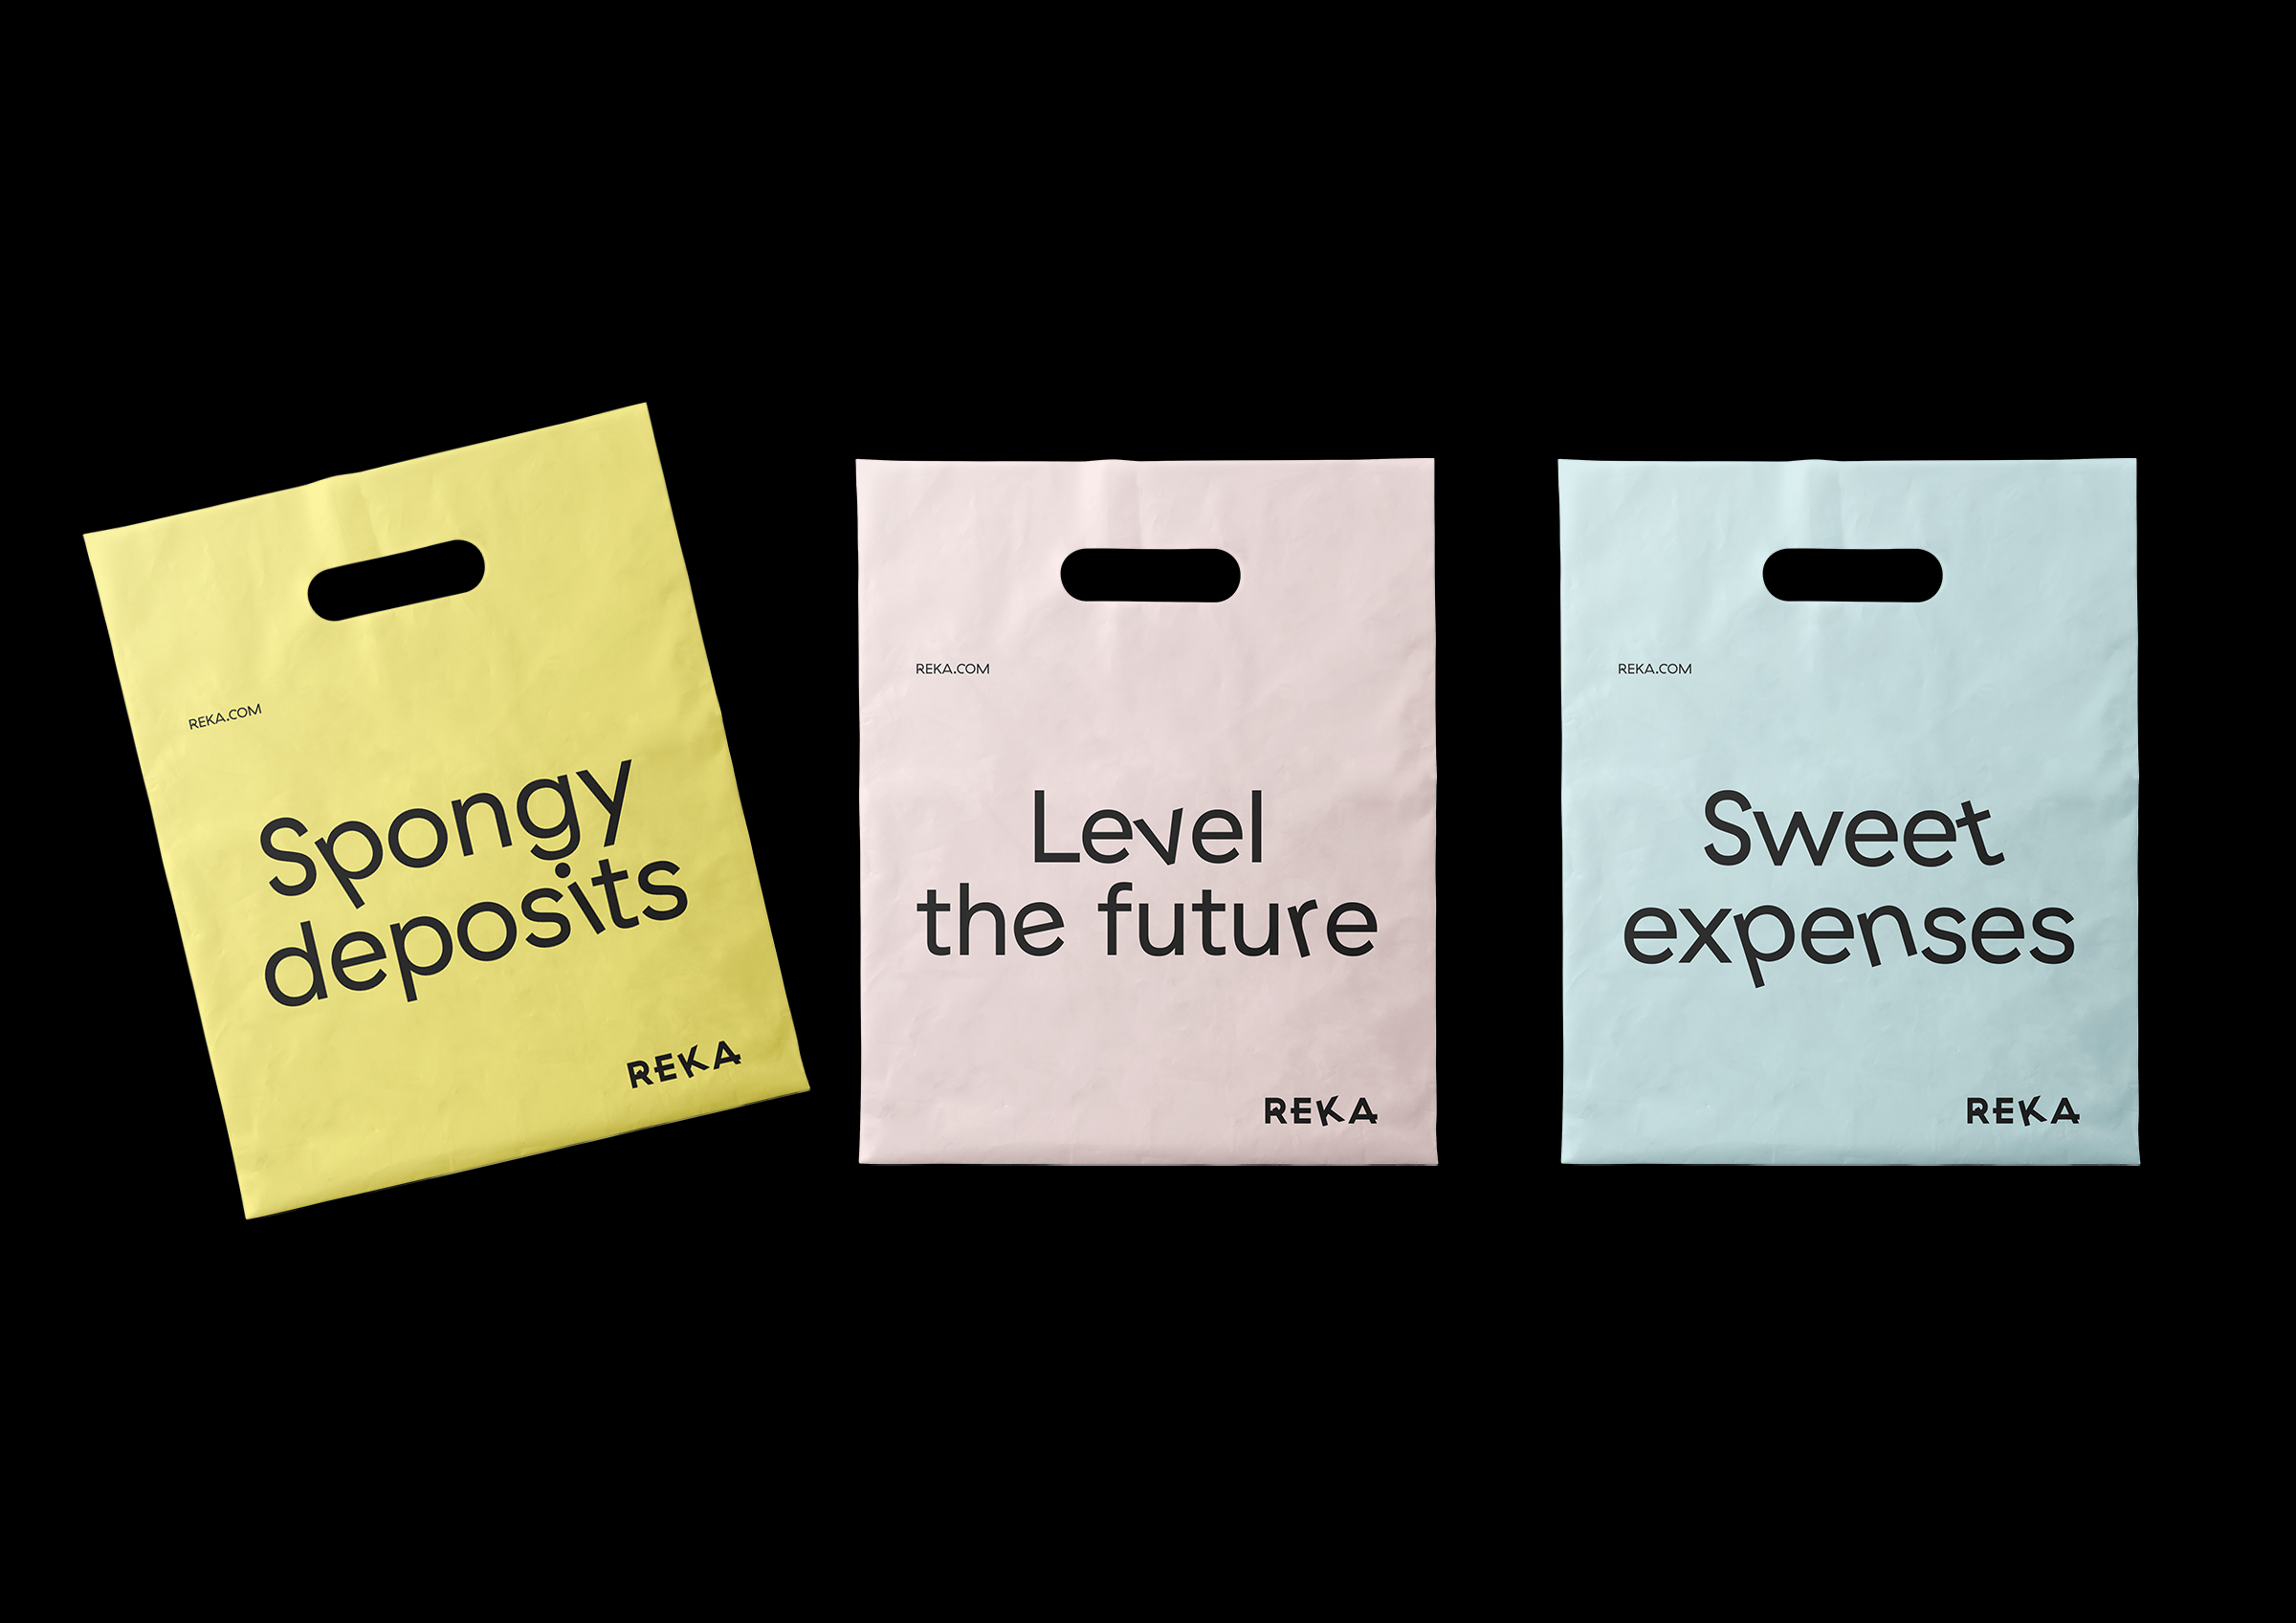 Reka Payments – Identity for a New Payments Card for Young People